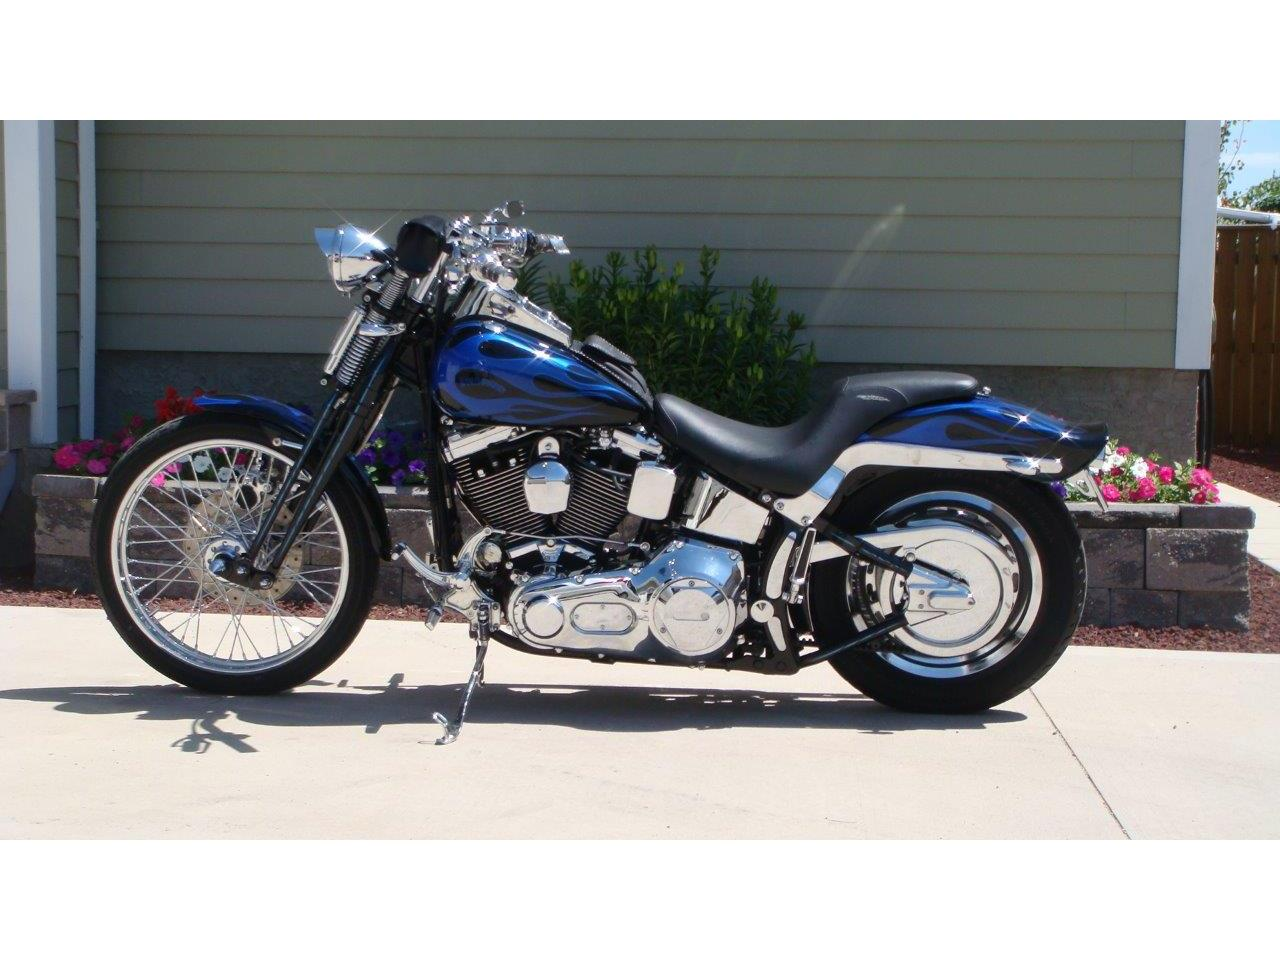 Large Picture of '96 Harley-Davidson Motorcycle - $13,600.00 Offered by a Private Seller - QBI5